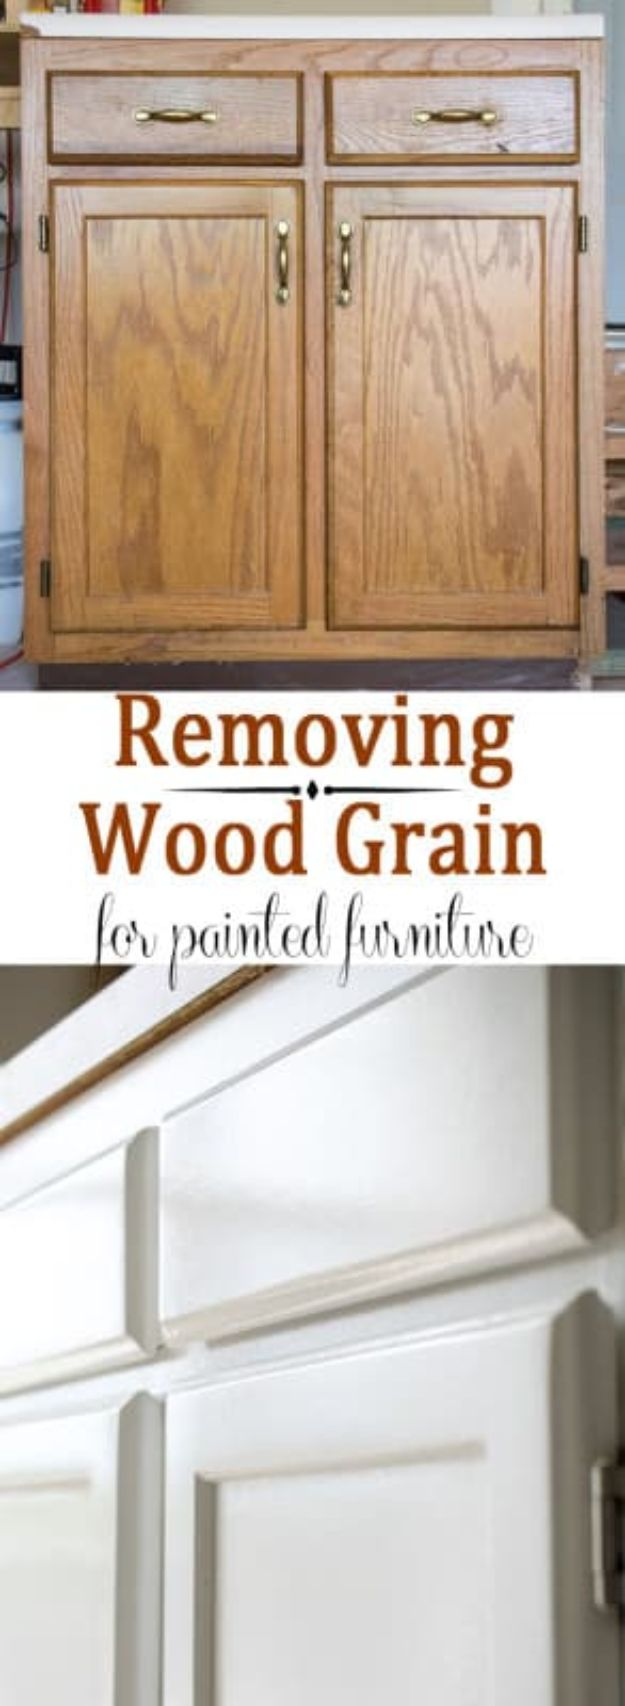 15 Practical Woodworking Tips That Will Improve Your Crafting Skills